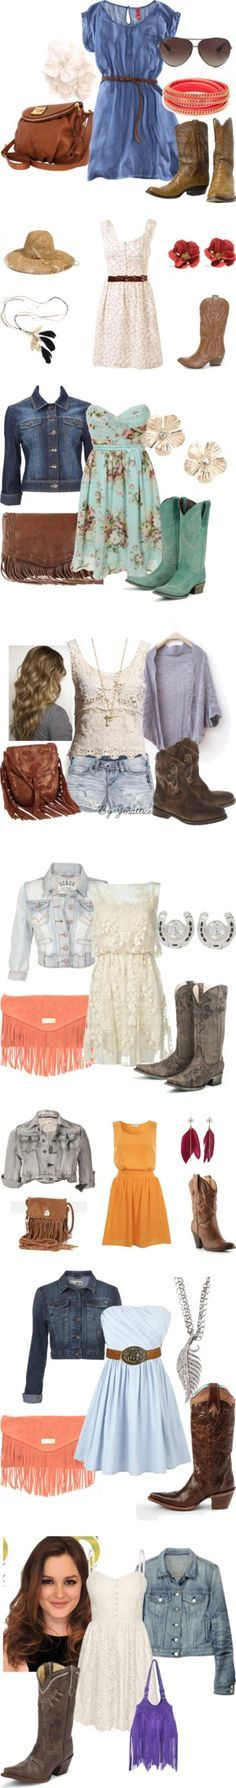 Mix and match these cute looks to create your ideal country concert outfit! #GarthNEX